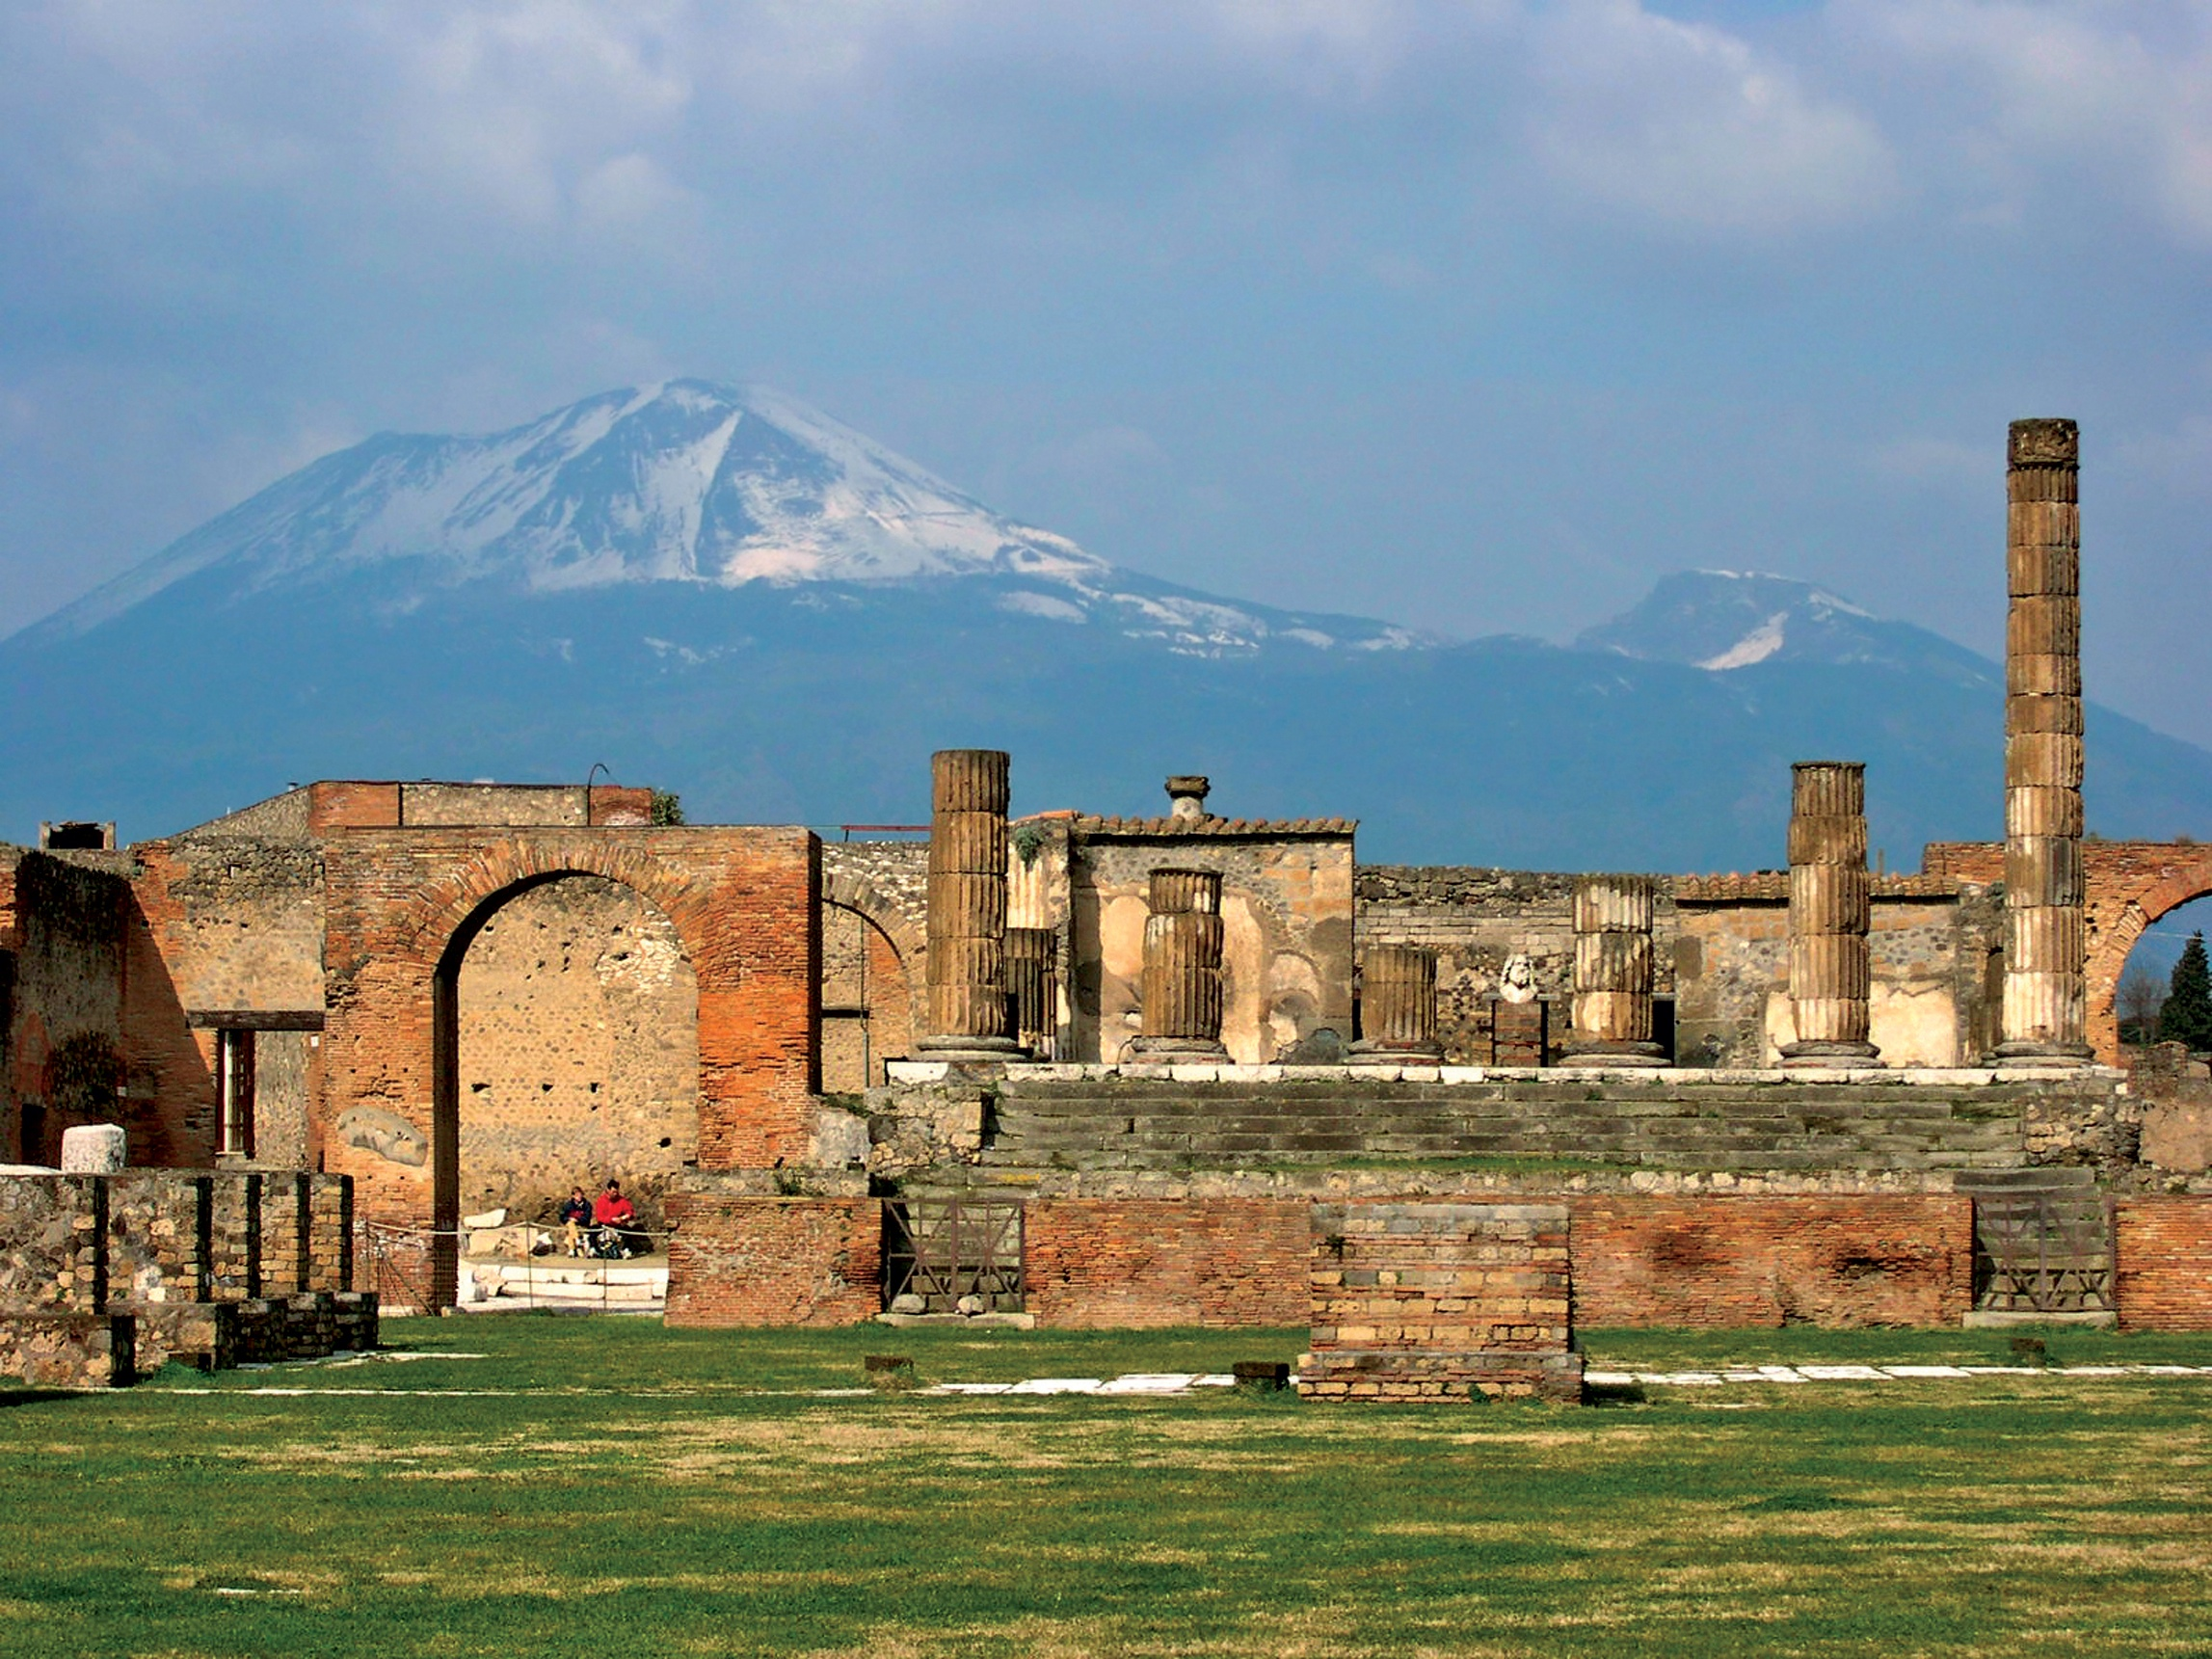 The ruins of Pompeii, with Mt. Vesuvius in the distance